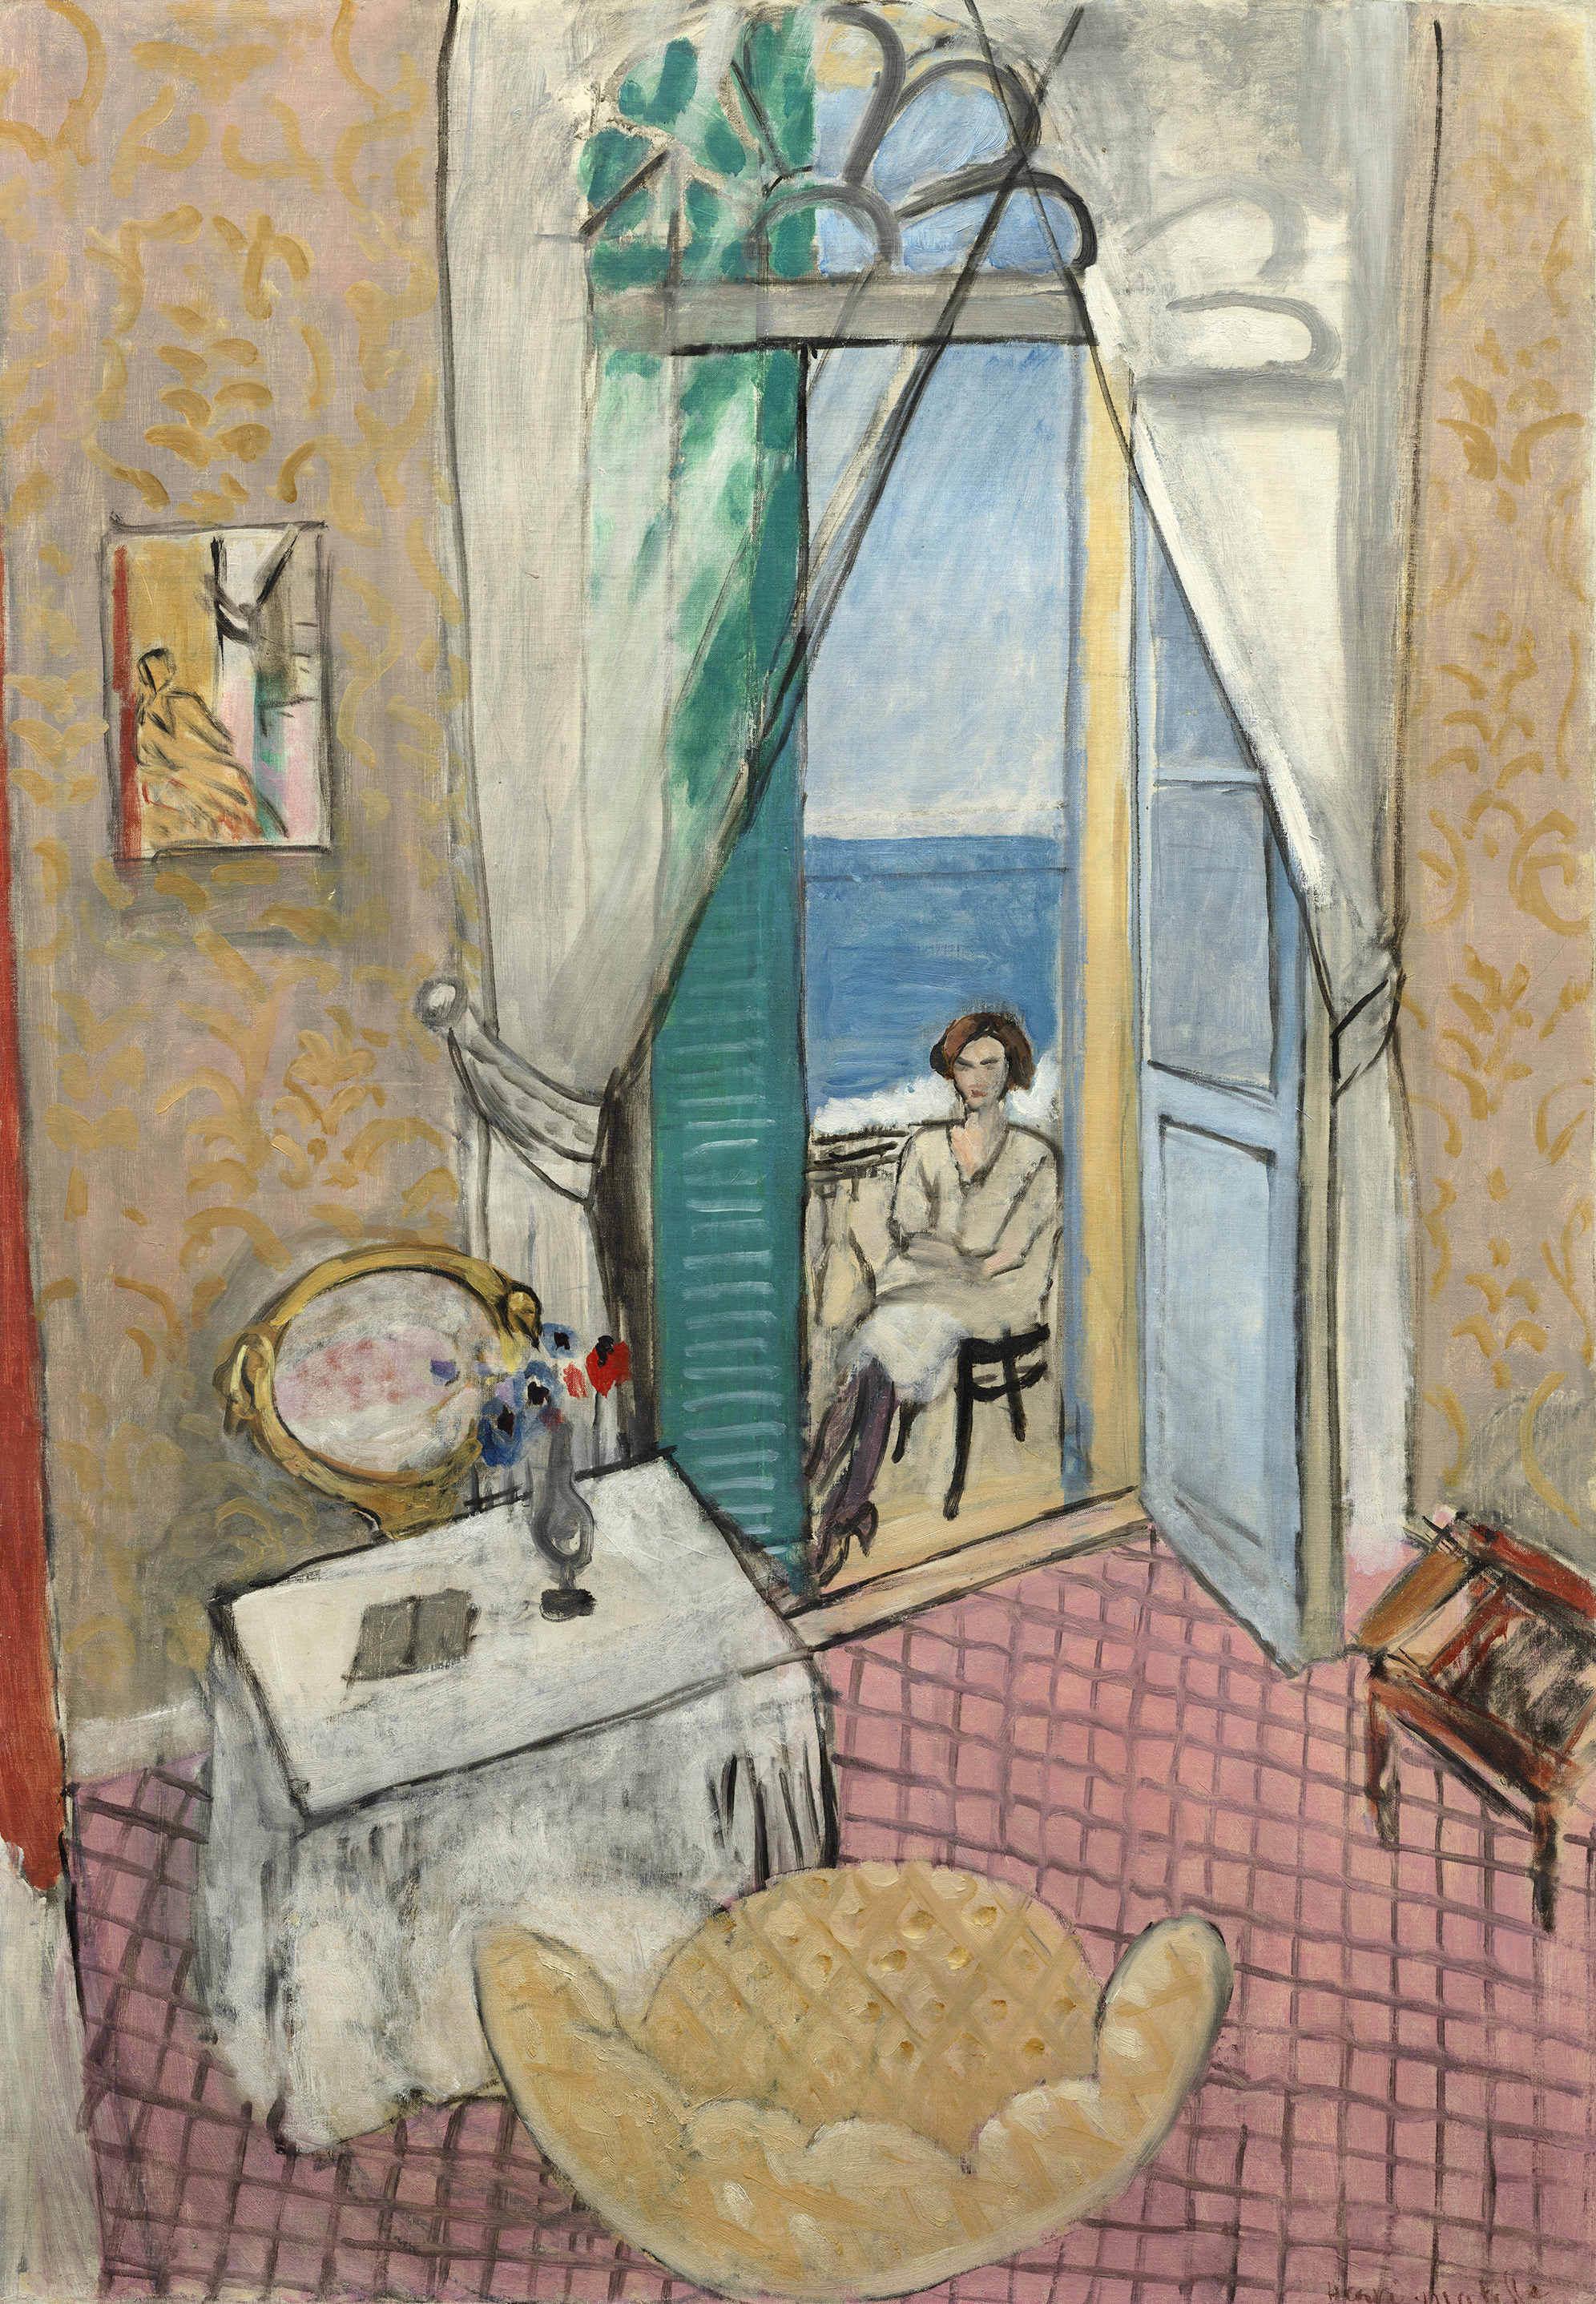 The Radical Familiar: Matisse's Early Nice Interiors